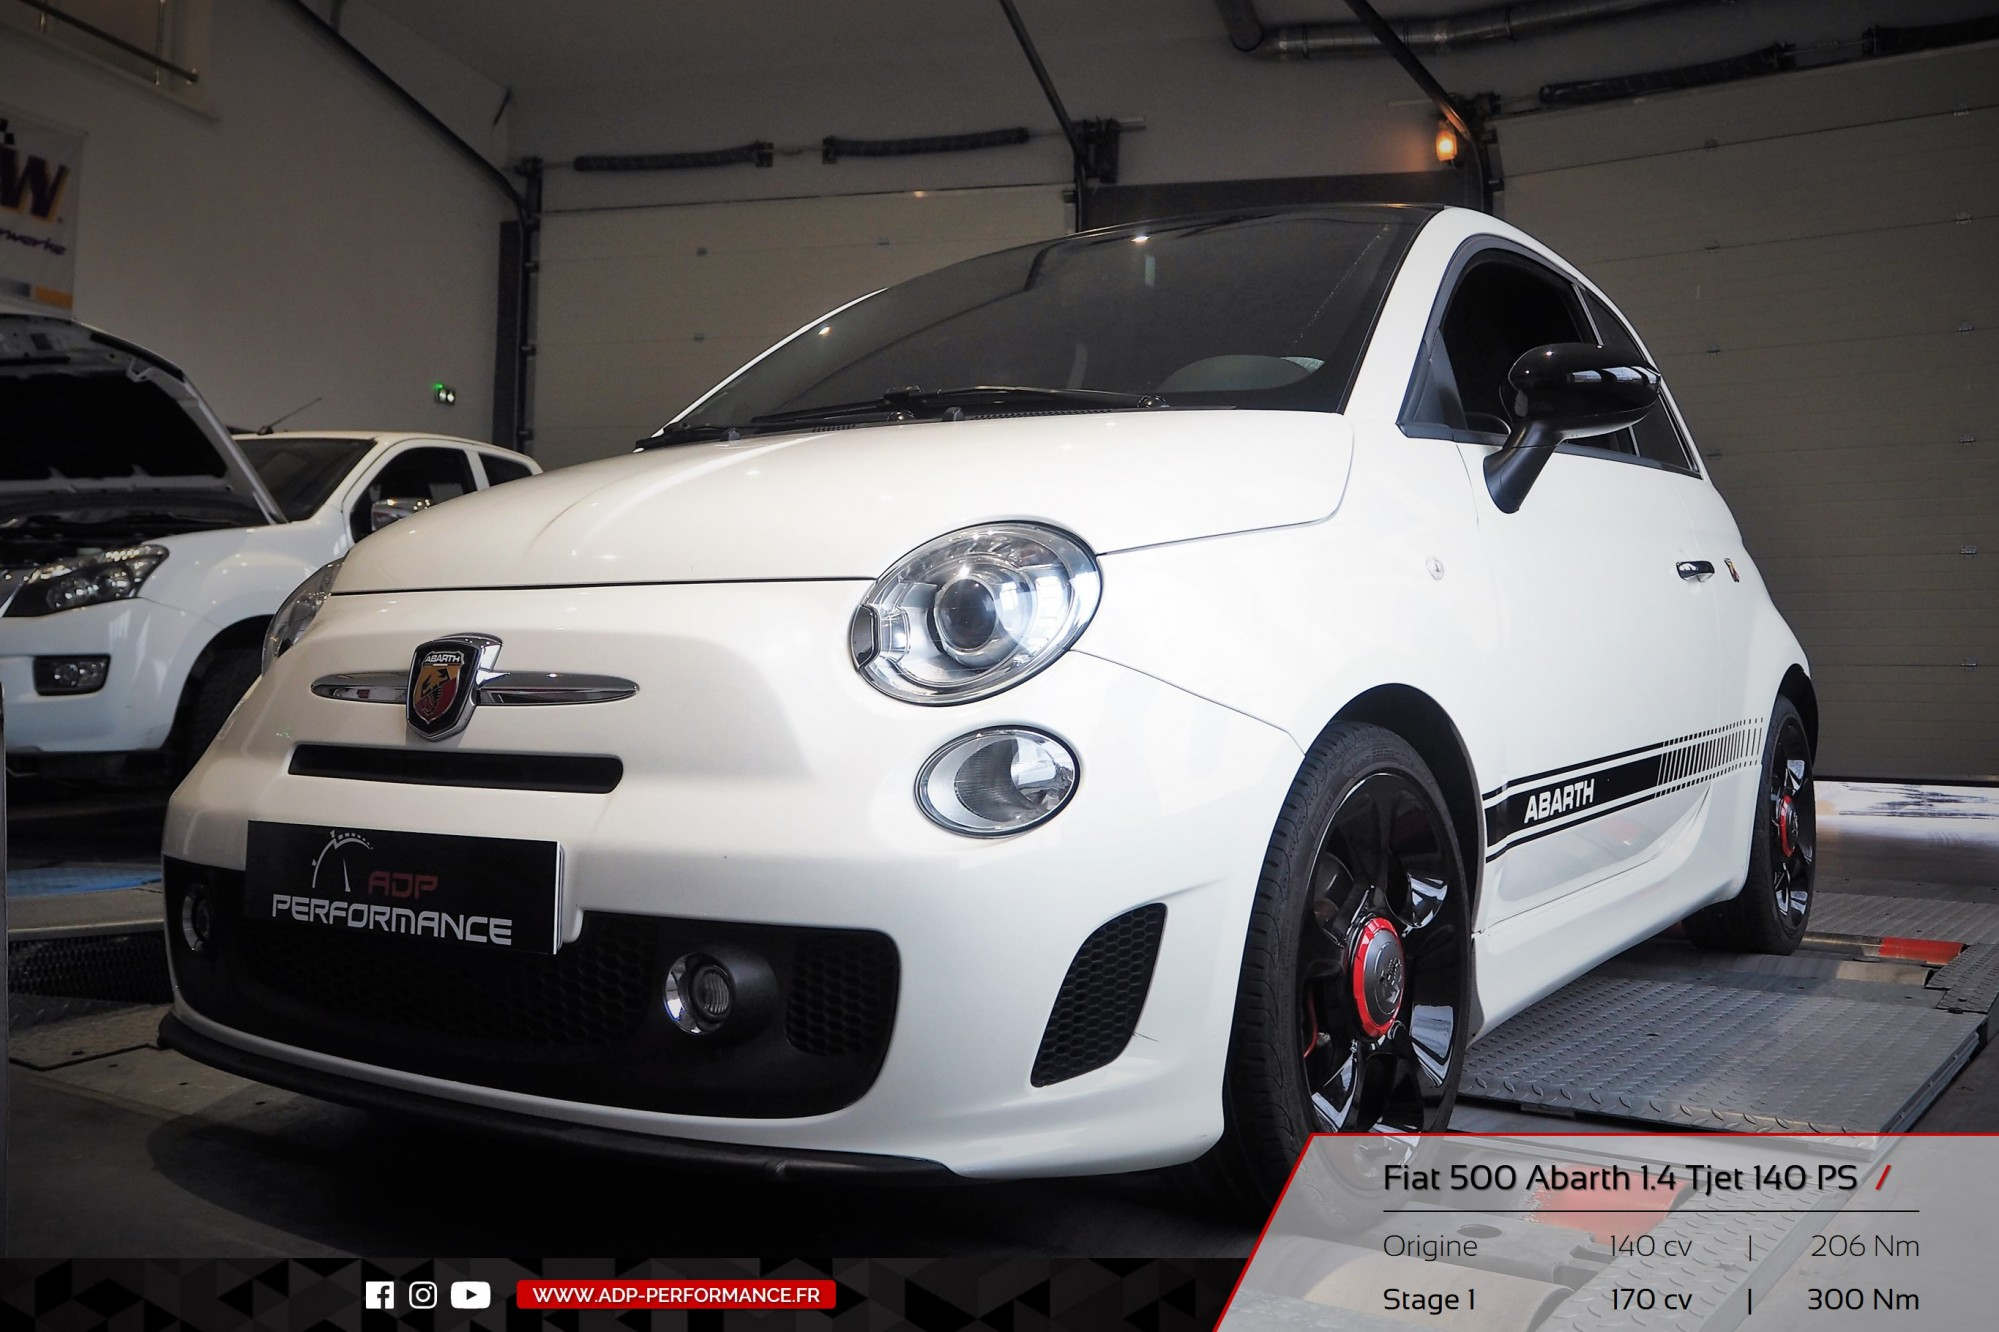 fiat 500 500c 2007 2015 essence abarth 1 4 tjet 140 cv reprogrammation de votre. Black Bedroom Furniture Sets. Home Design Ideas